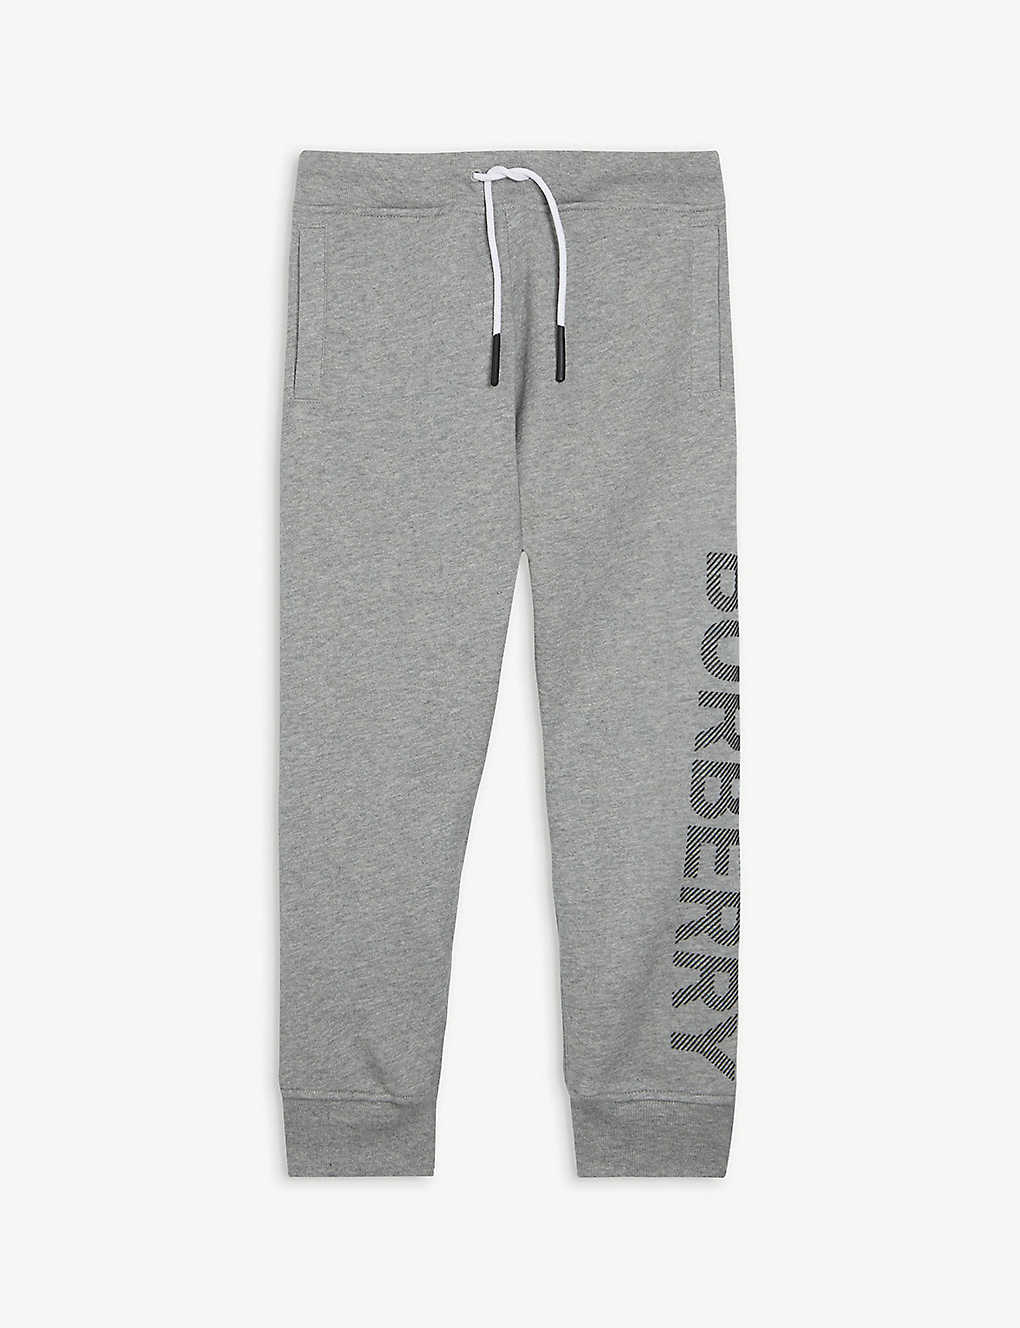 BURBERRY: Logo-print cotton-jersey jogging bottoms 3-14 years